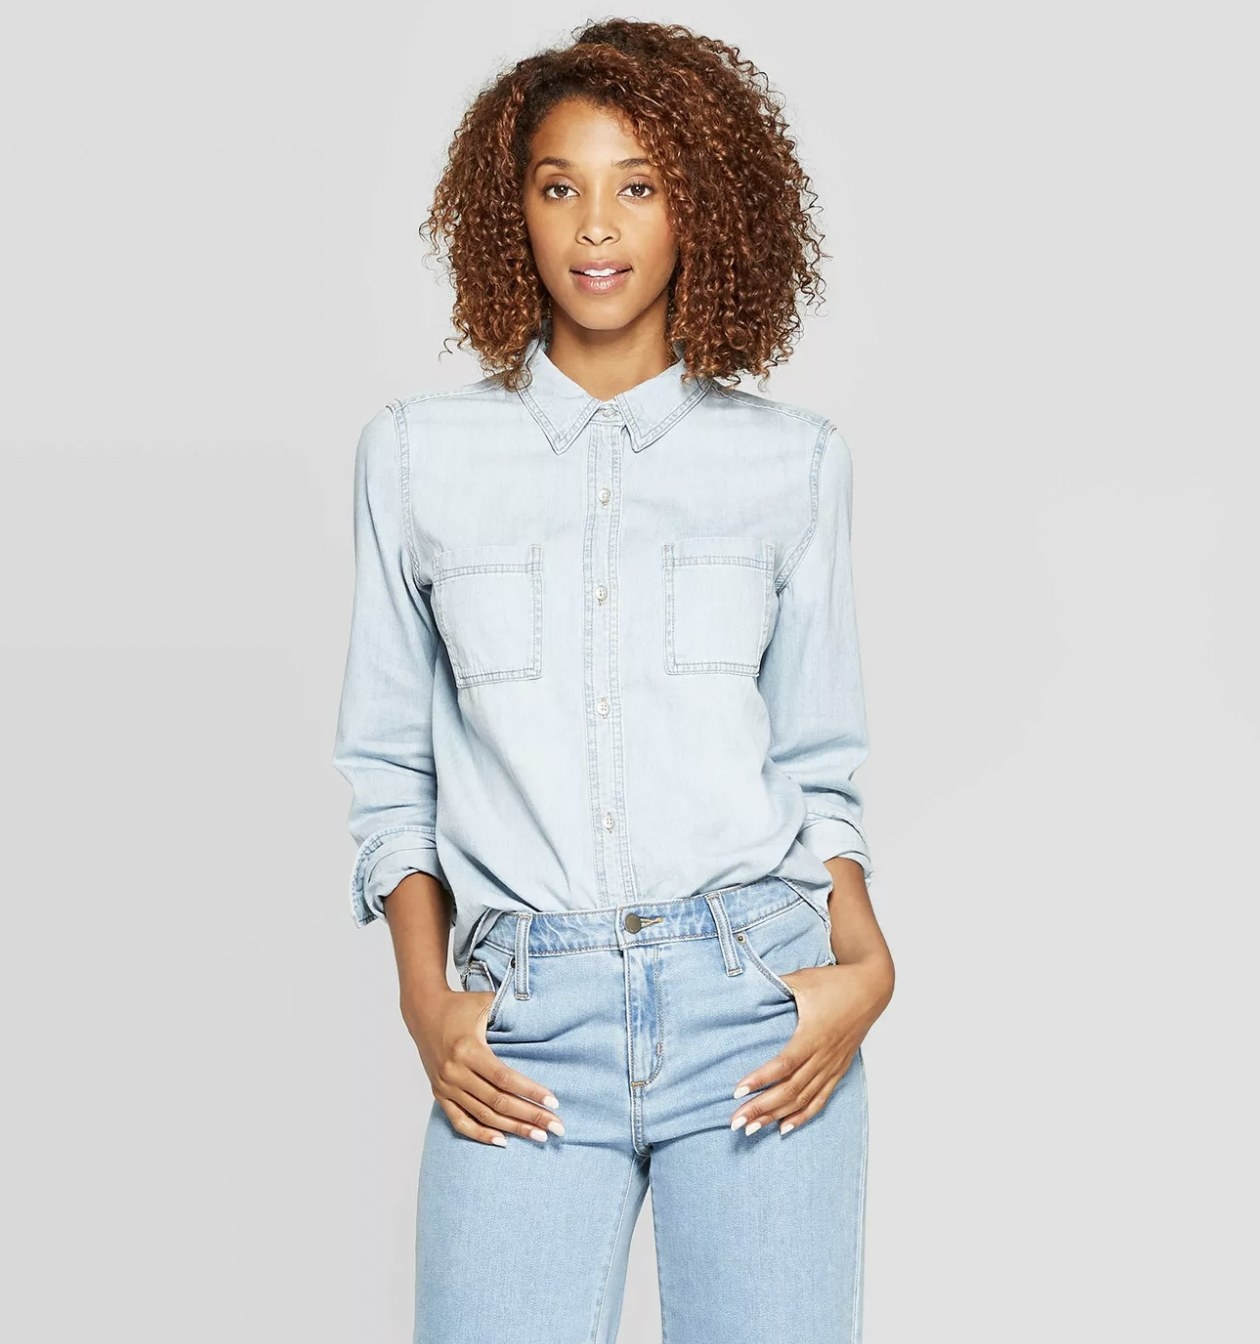 A model wearing a long-sleeved denim shirt with blue jean